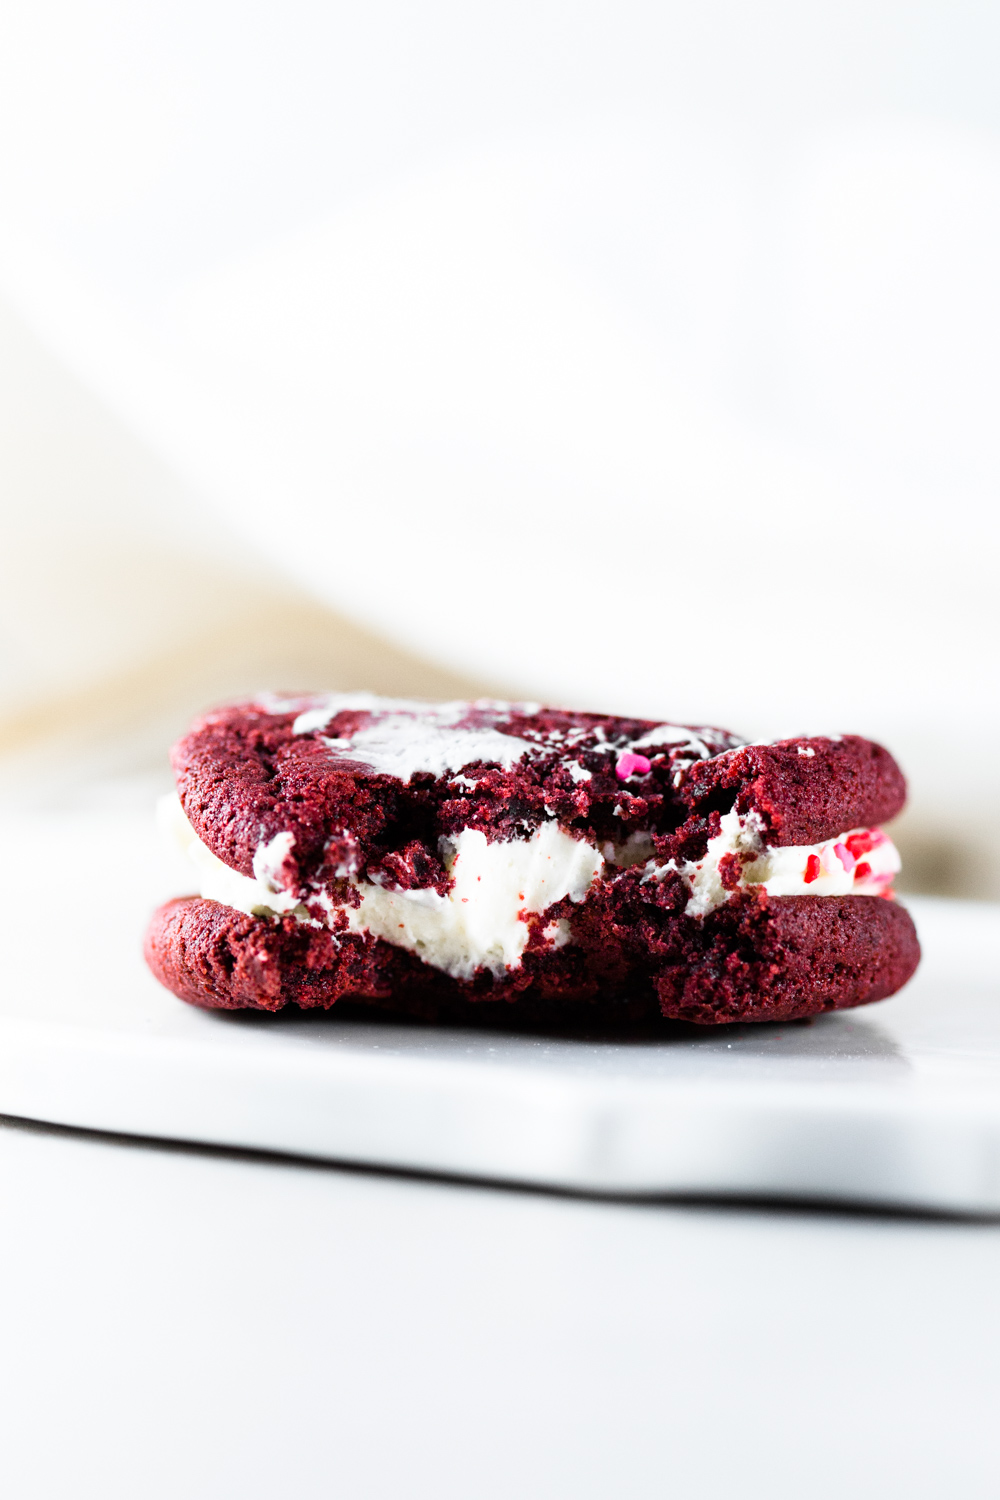 Delicious and chewy Vegan Red Velvet Cookies sandwiched with a yummy Cream Cheese Frosting. Think Red Velvet Cake, but in a convenient cookie form! #redvelvet #cookies #veganredvelvet #vegancookies #cheesecake #creamcheese #icing #dairyfree #eggless #cake #simple #easy #baking